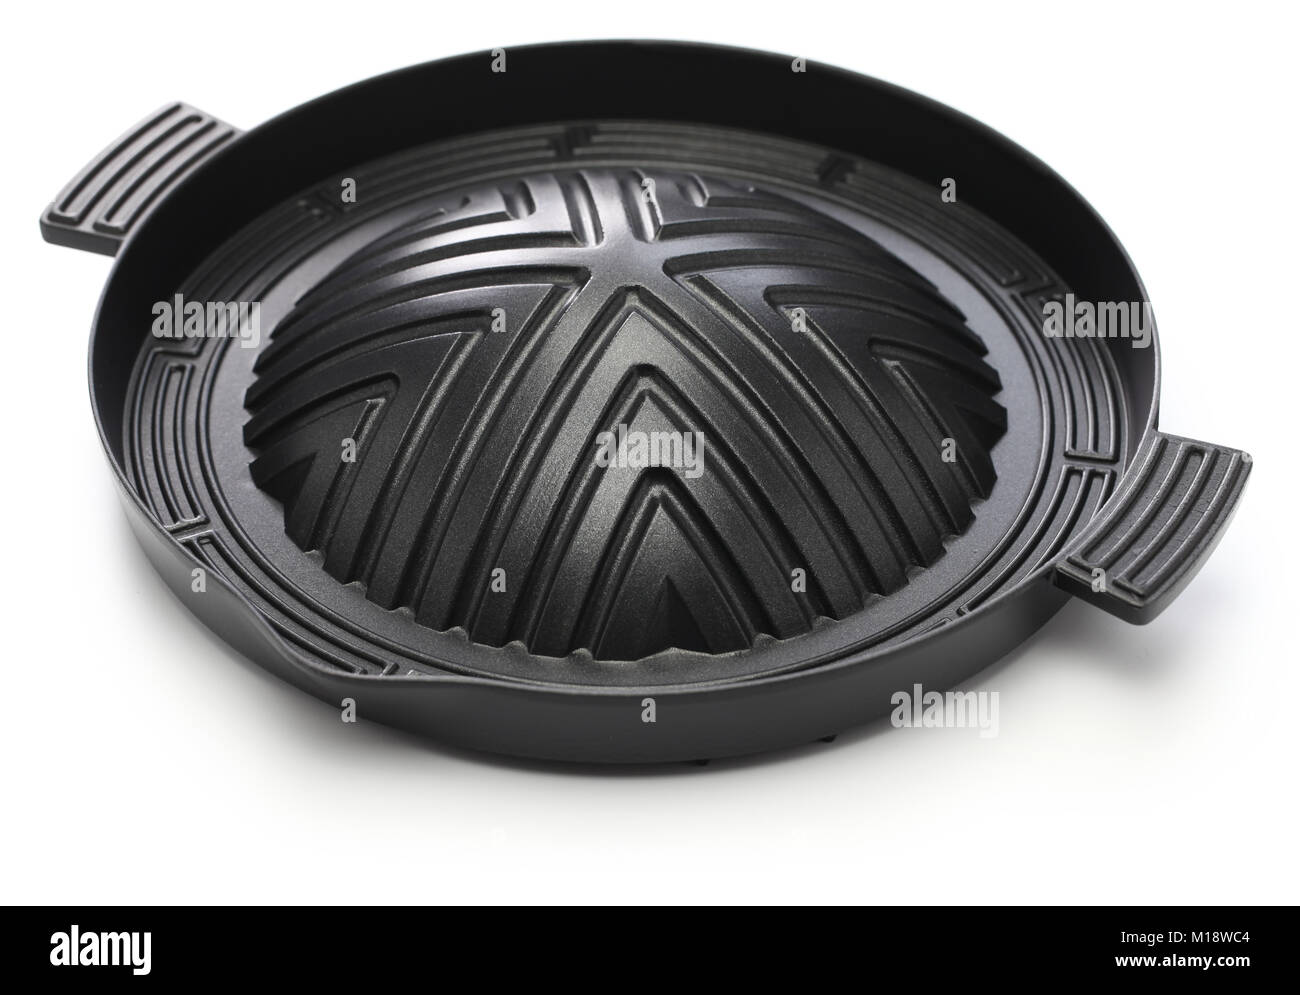 Pan for Jingisukan(Japanese style lamb barbecue), dome-shaped skillet - Stock Image